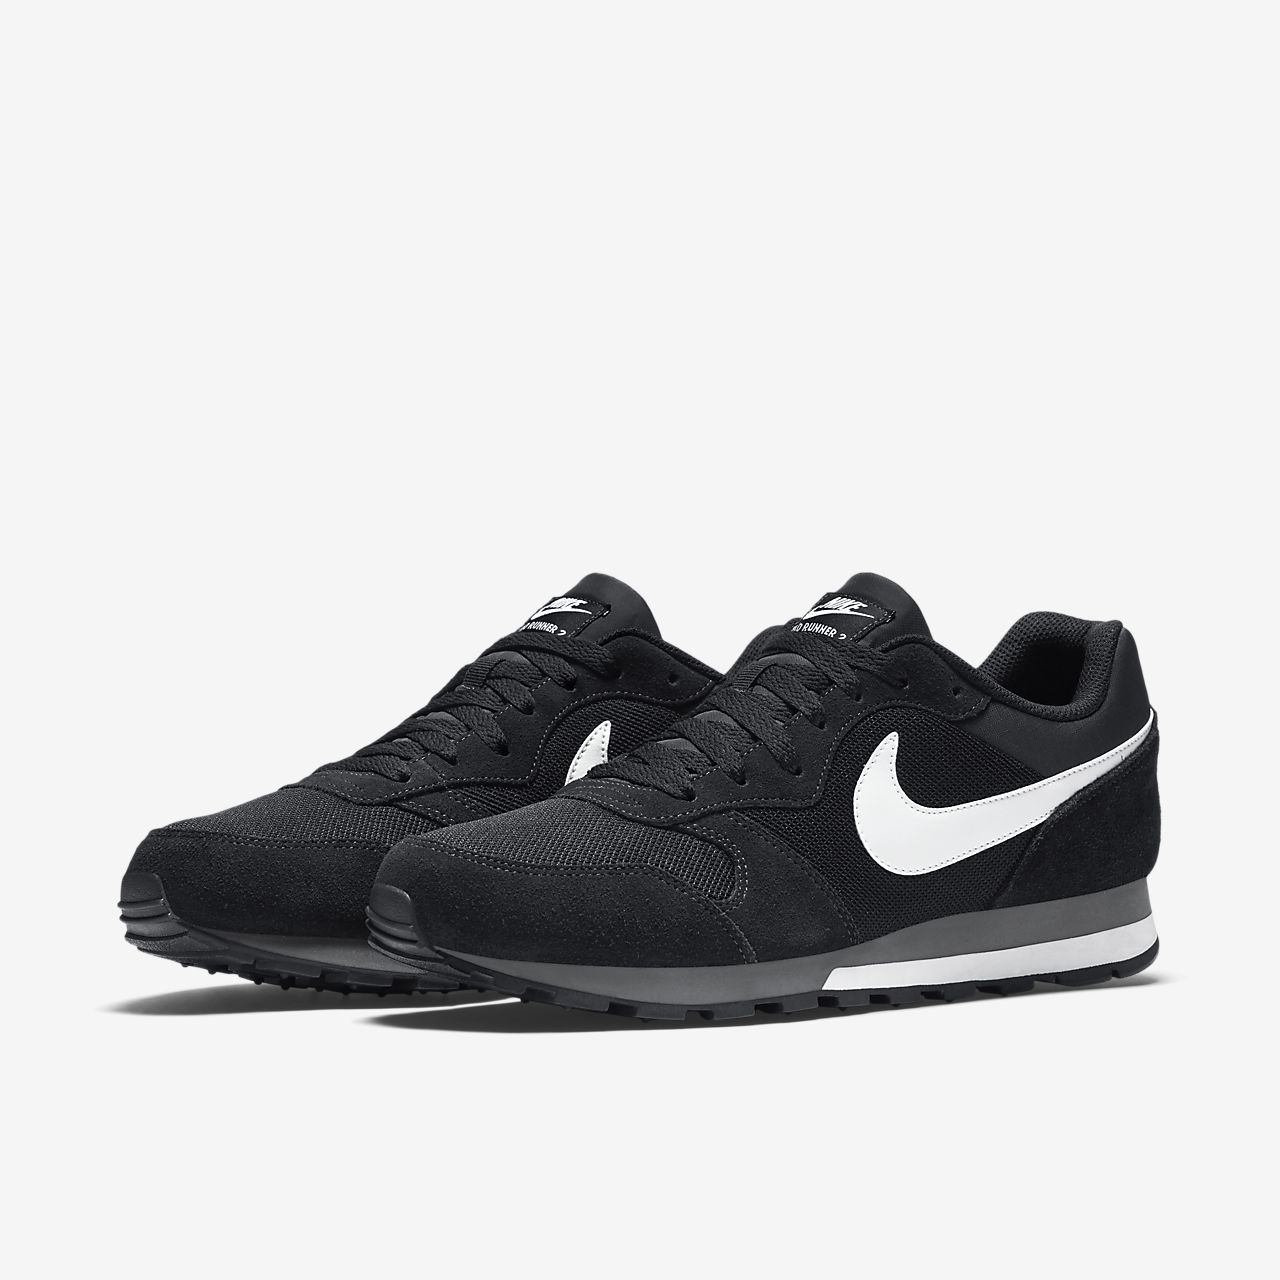 Nike Md Runner 2 EU 41